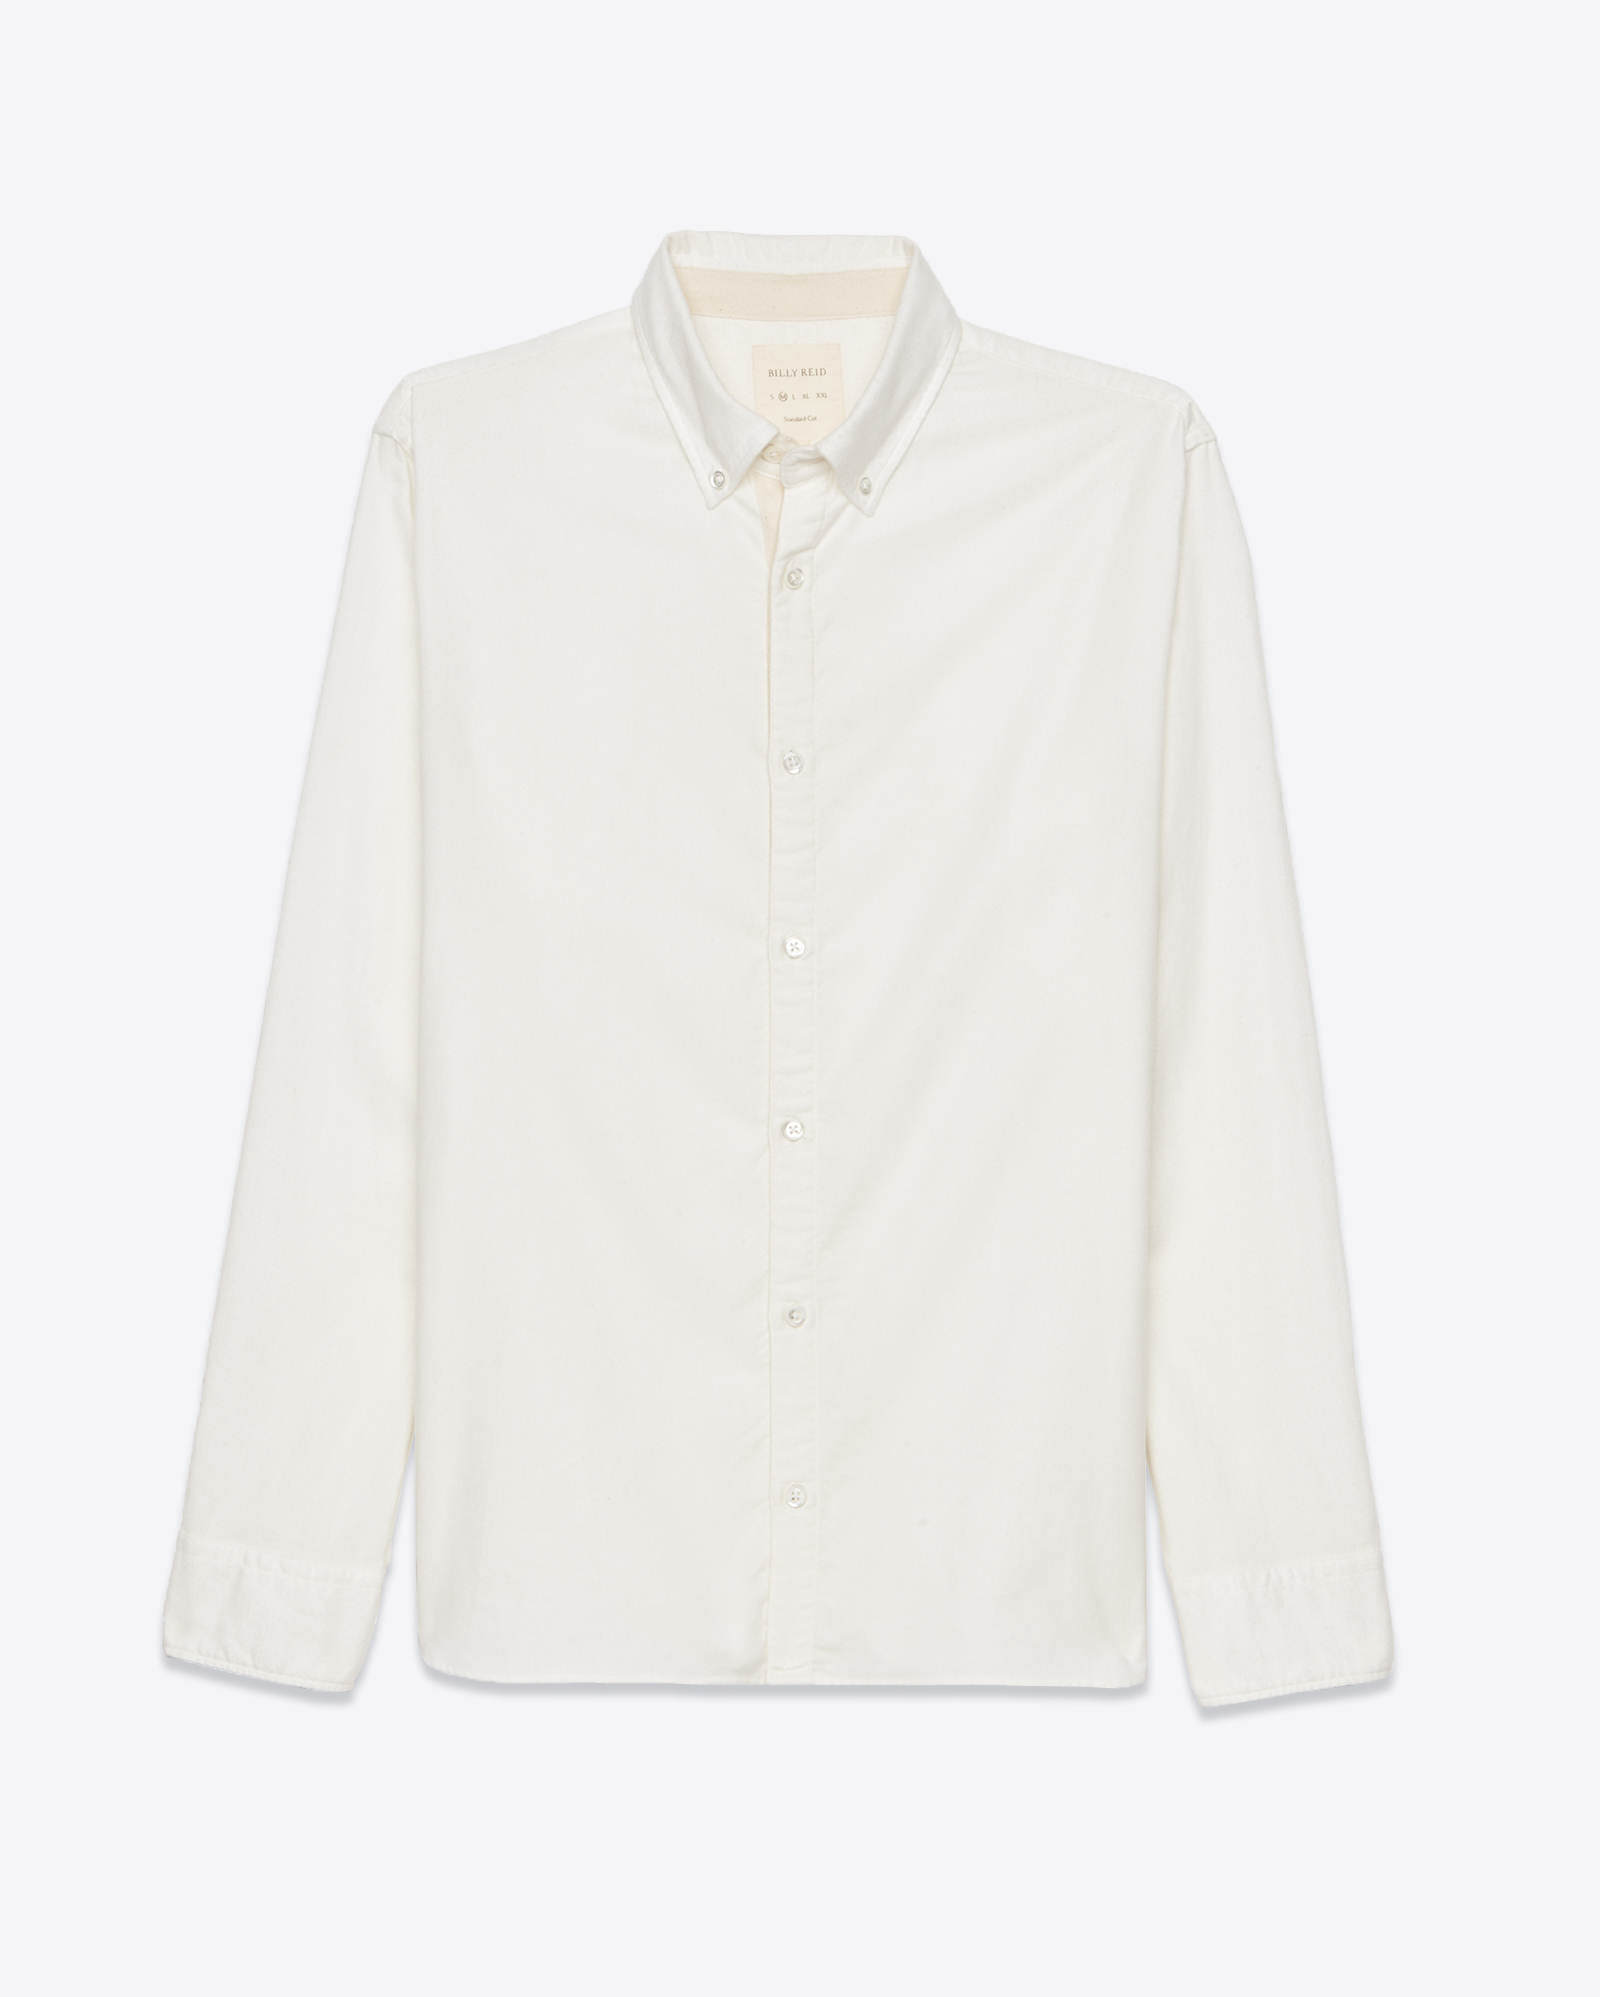 Billy reid brushed twill shirt in white for men white for Brushed cotton twill shirt